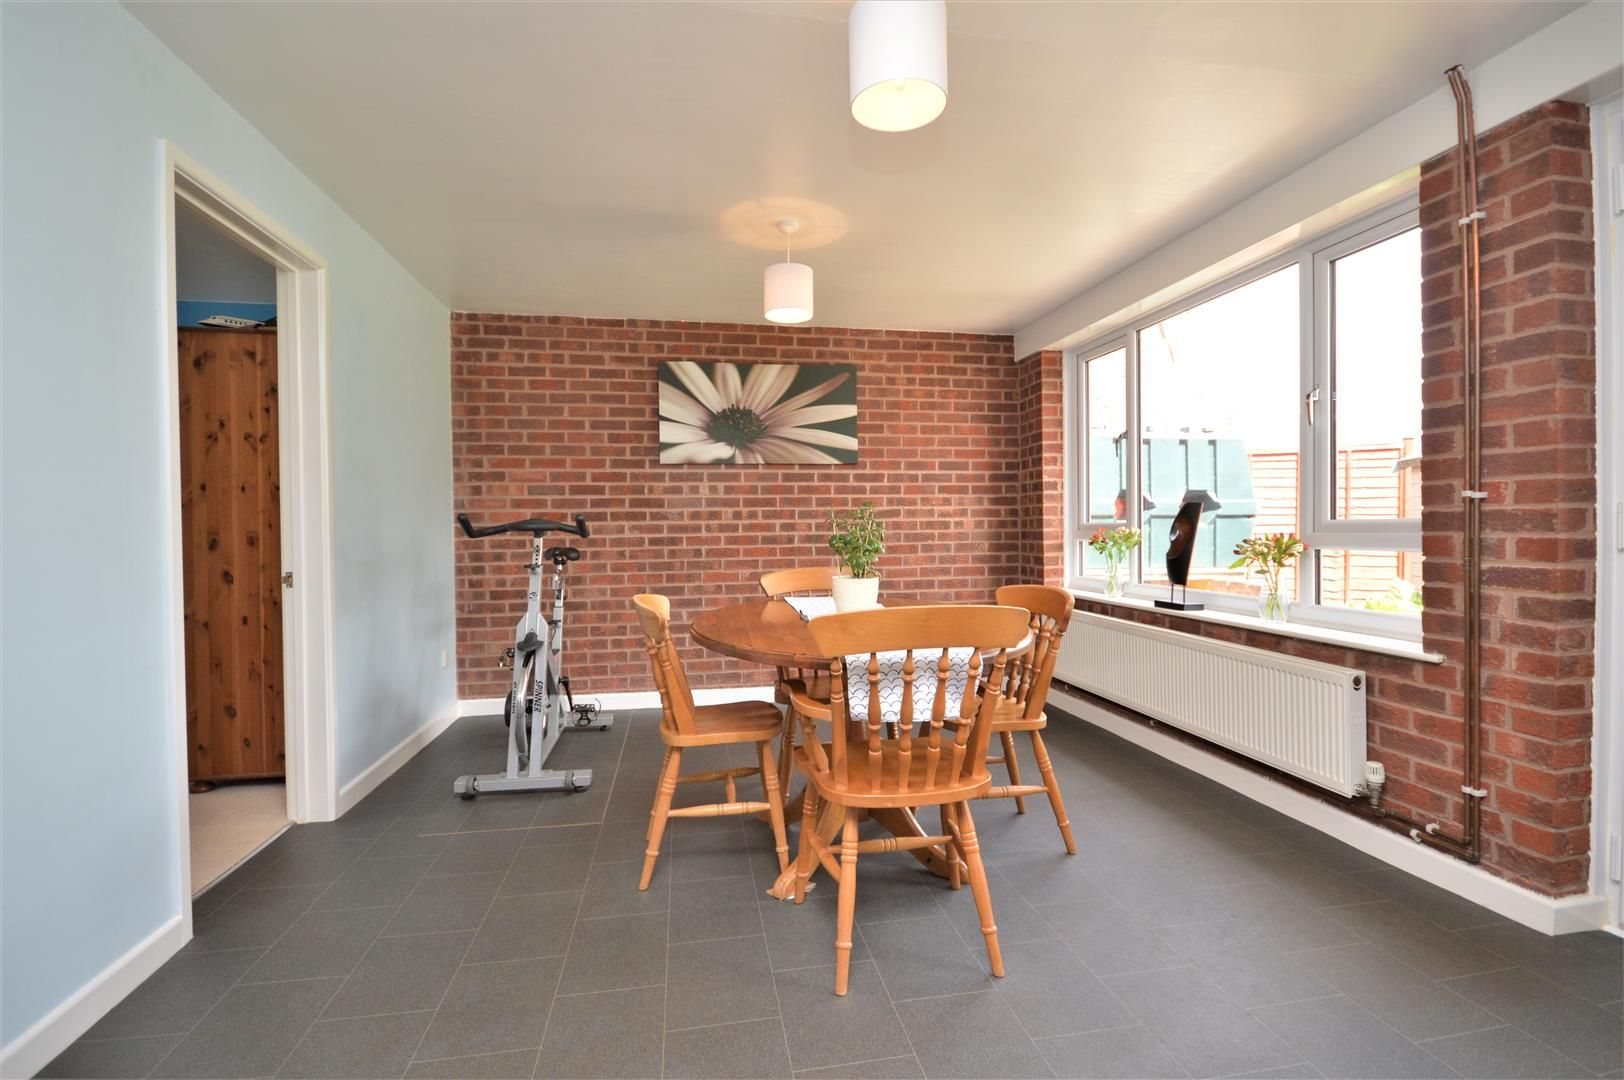 3 bed detached for sale in Kings Caple 6